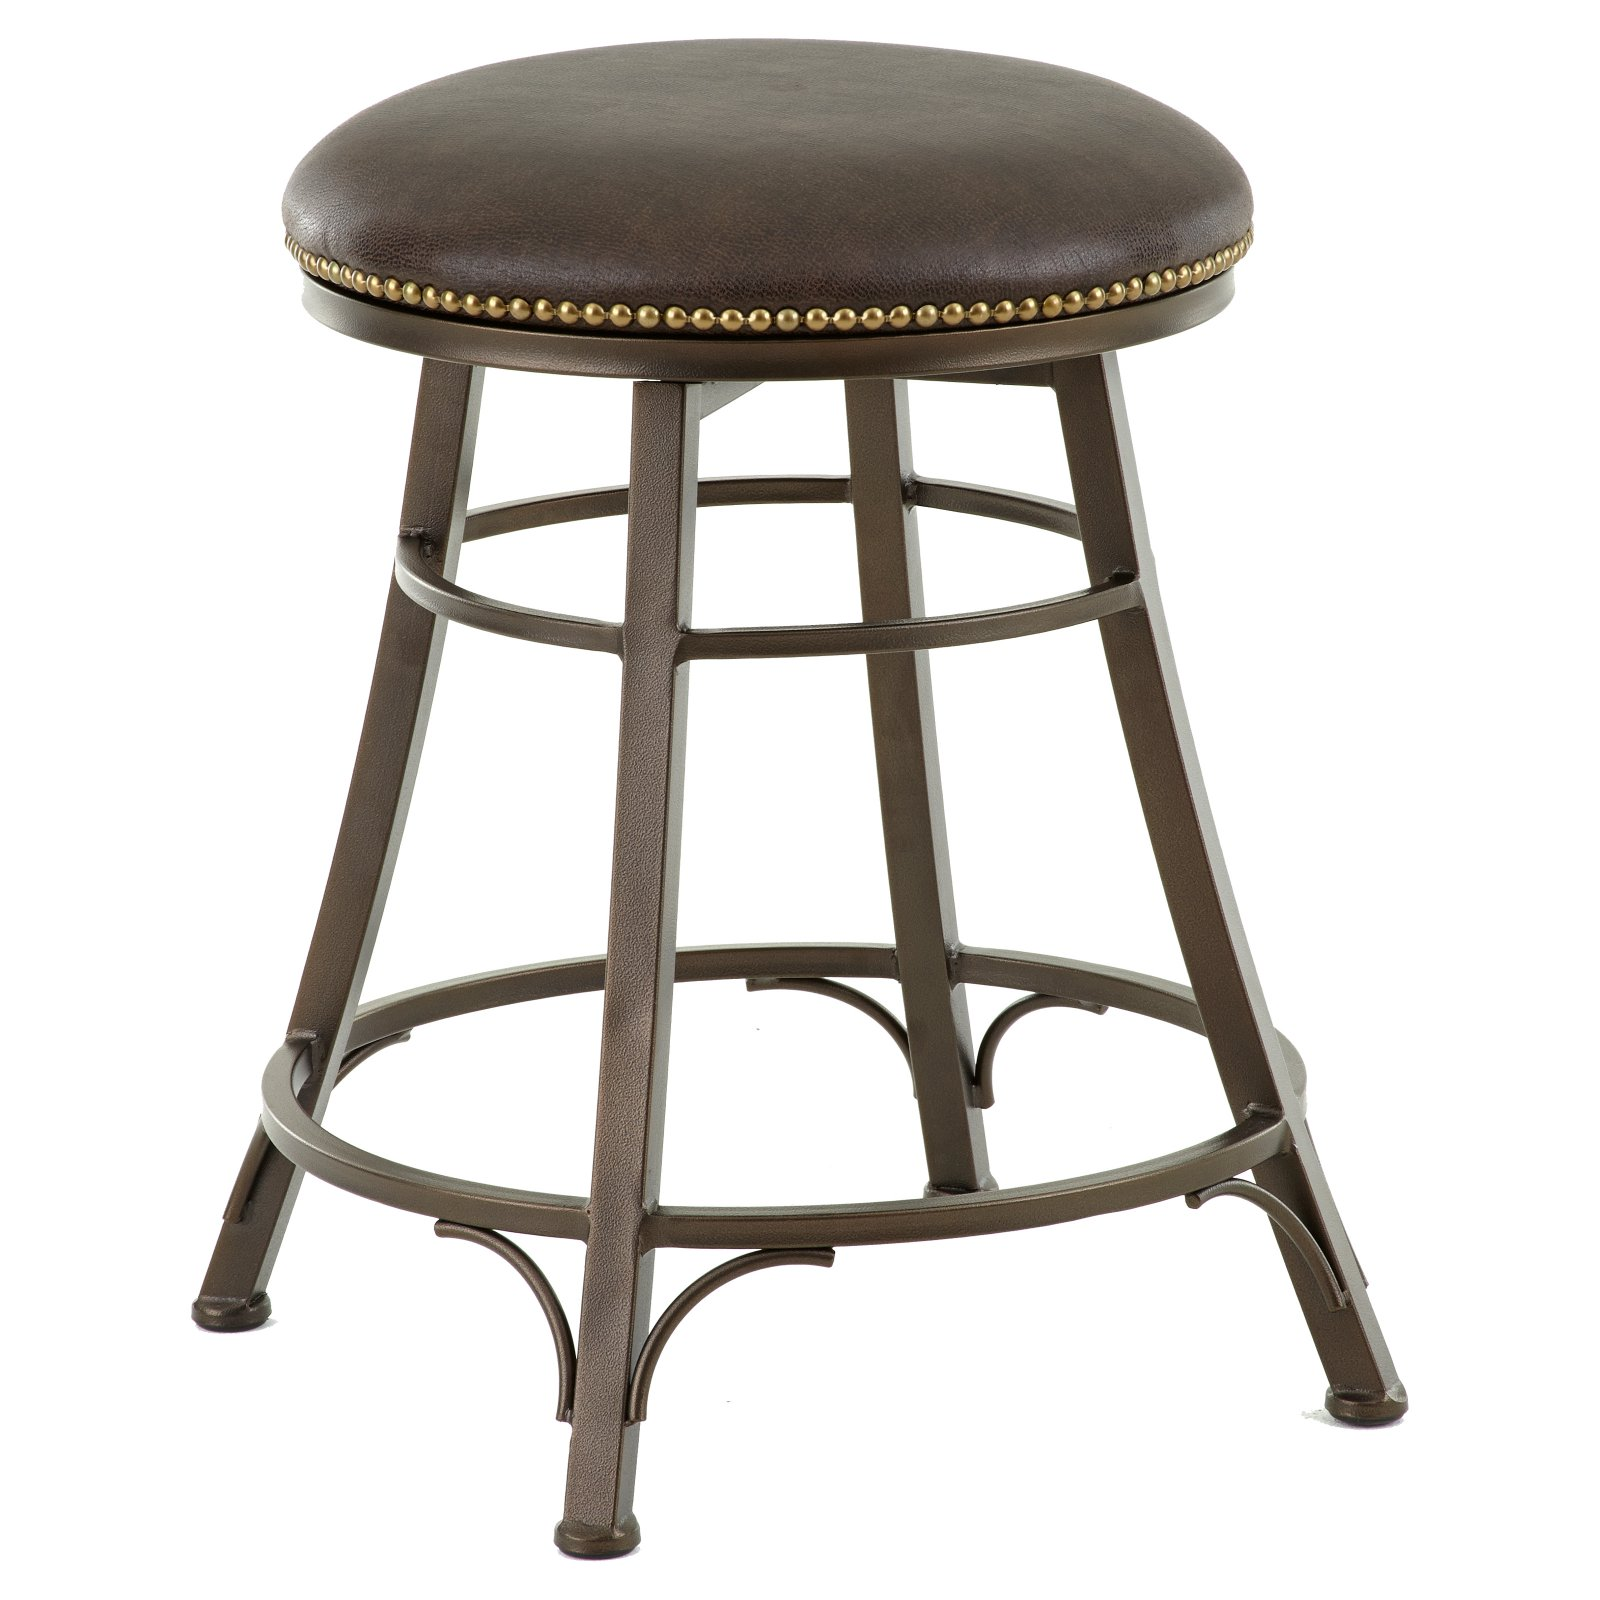 Steve Silver Bali 24 in. Backless Swivel Counter Stool by Steve Silver Company